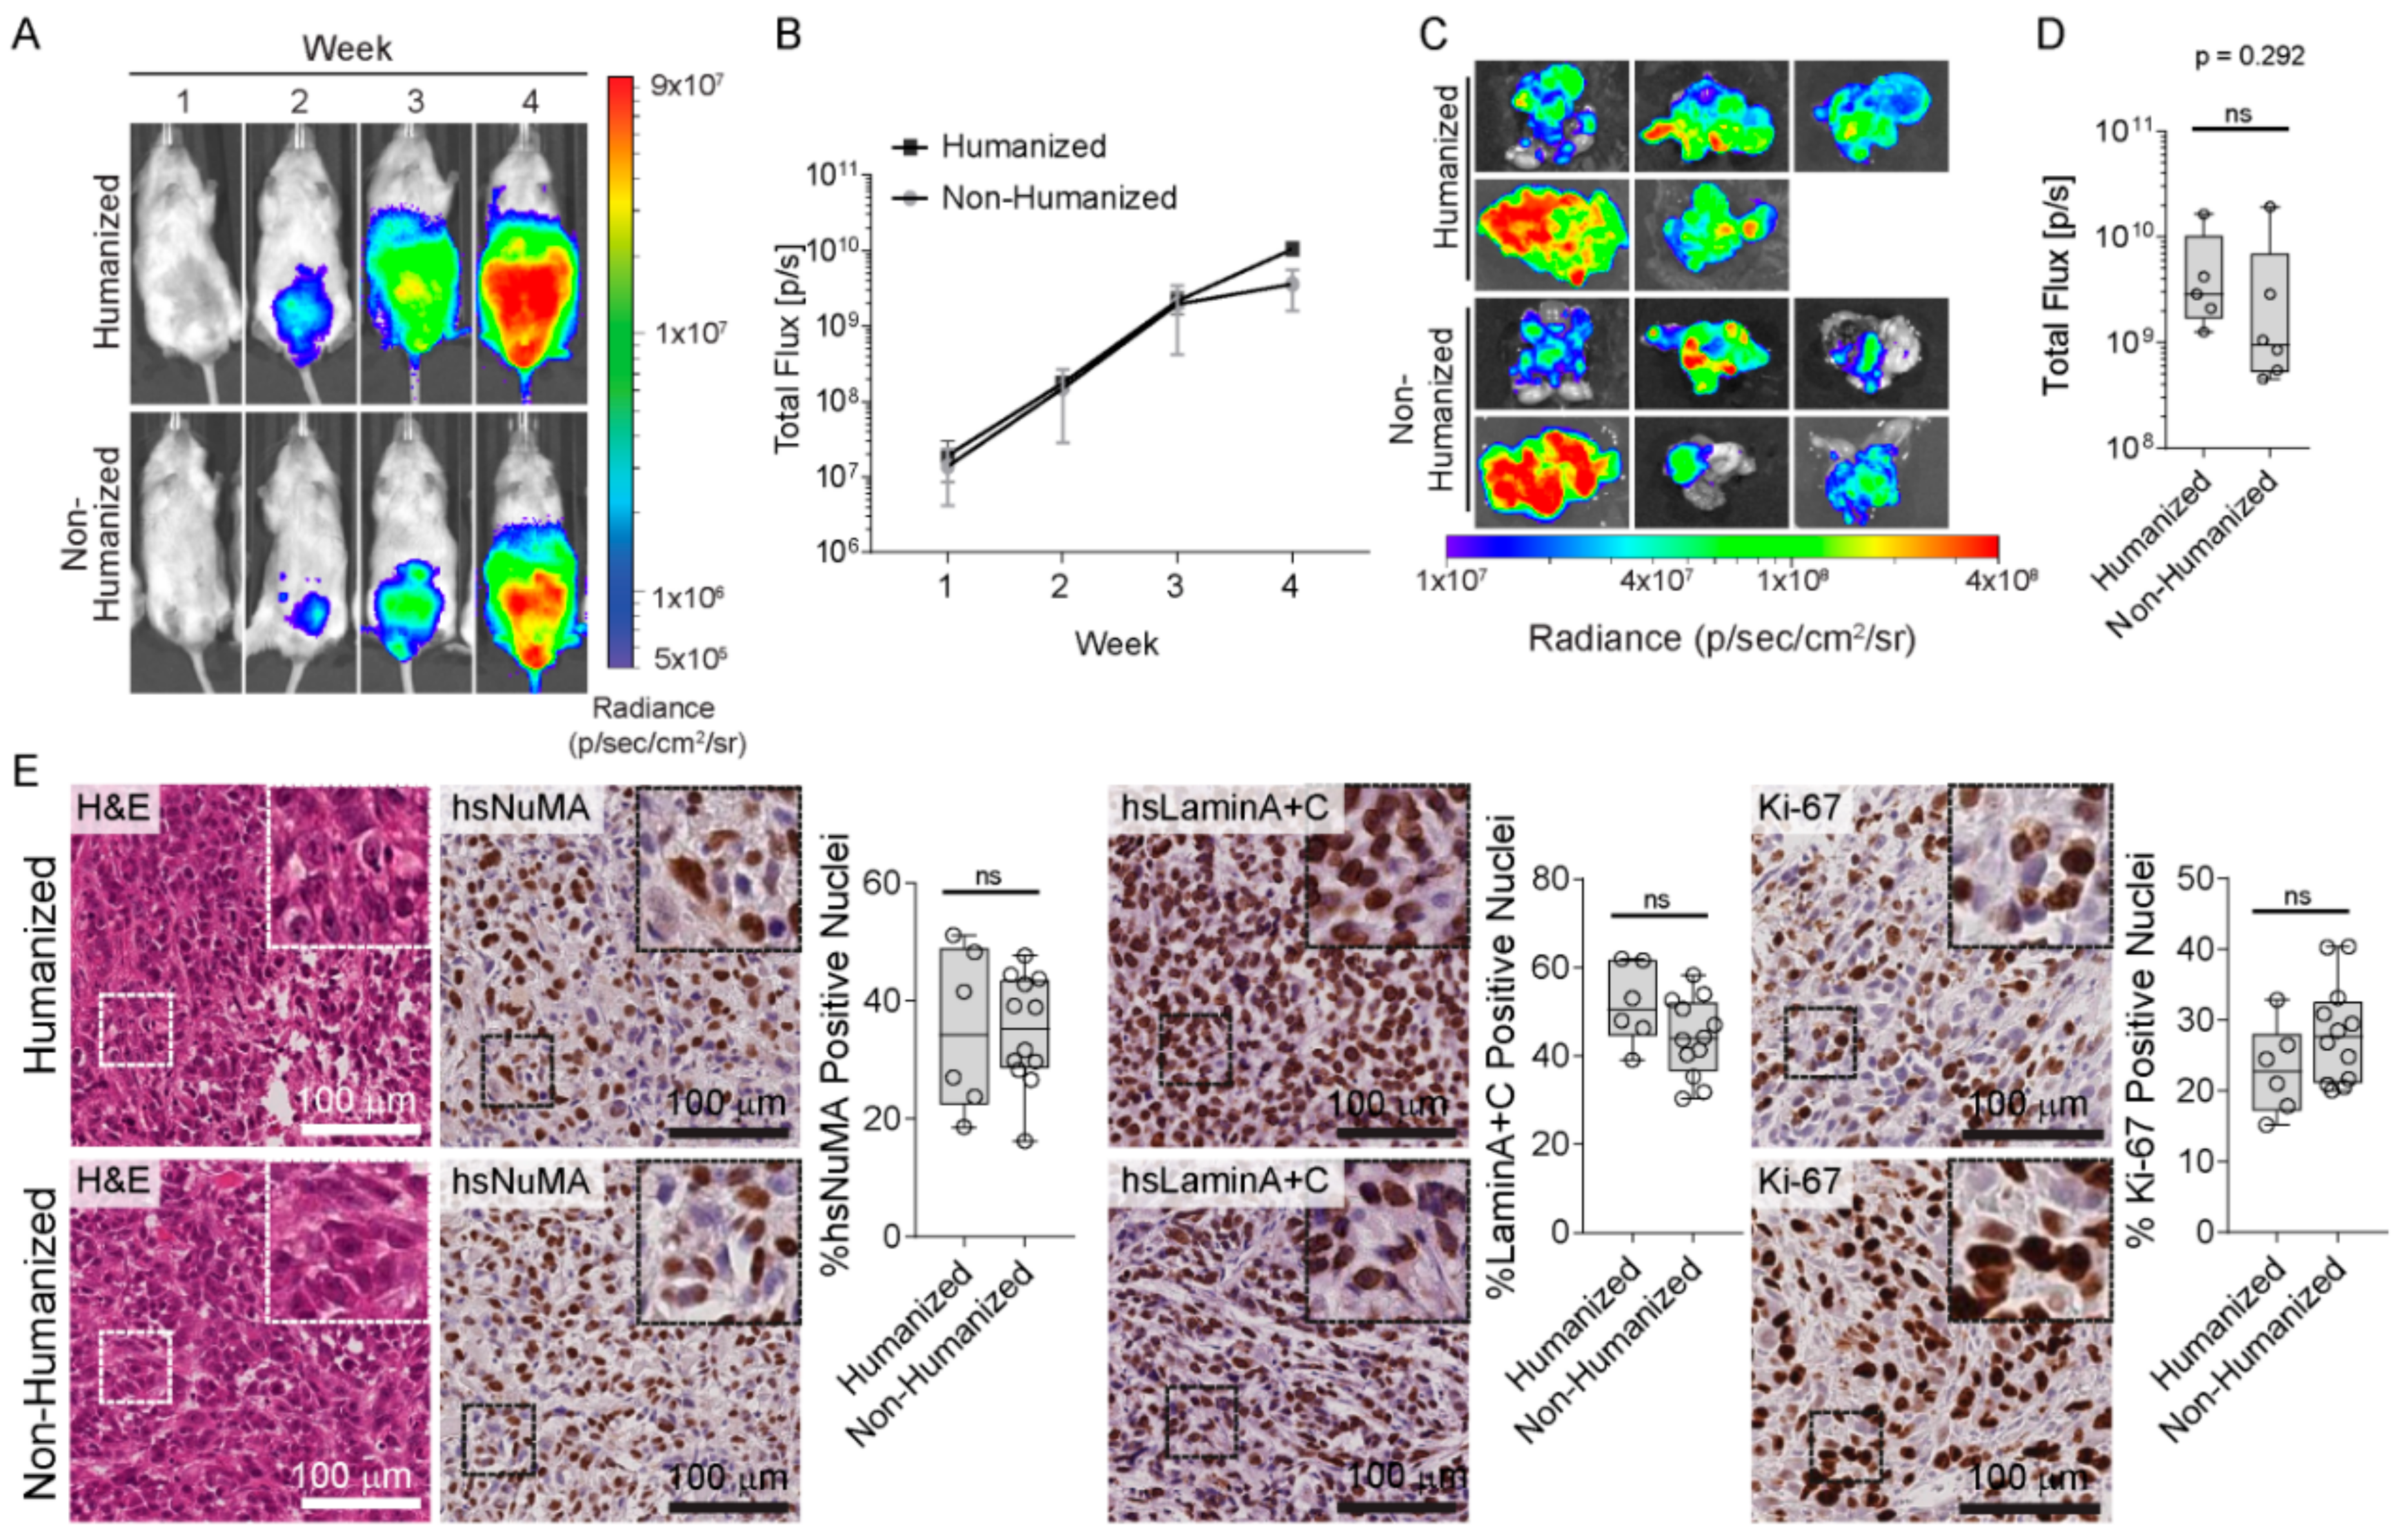 Presence of HO-1-postitive macrophages in the tumor